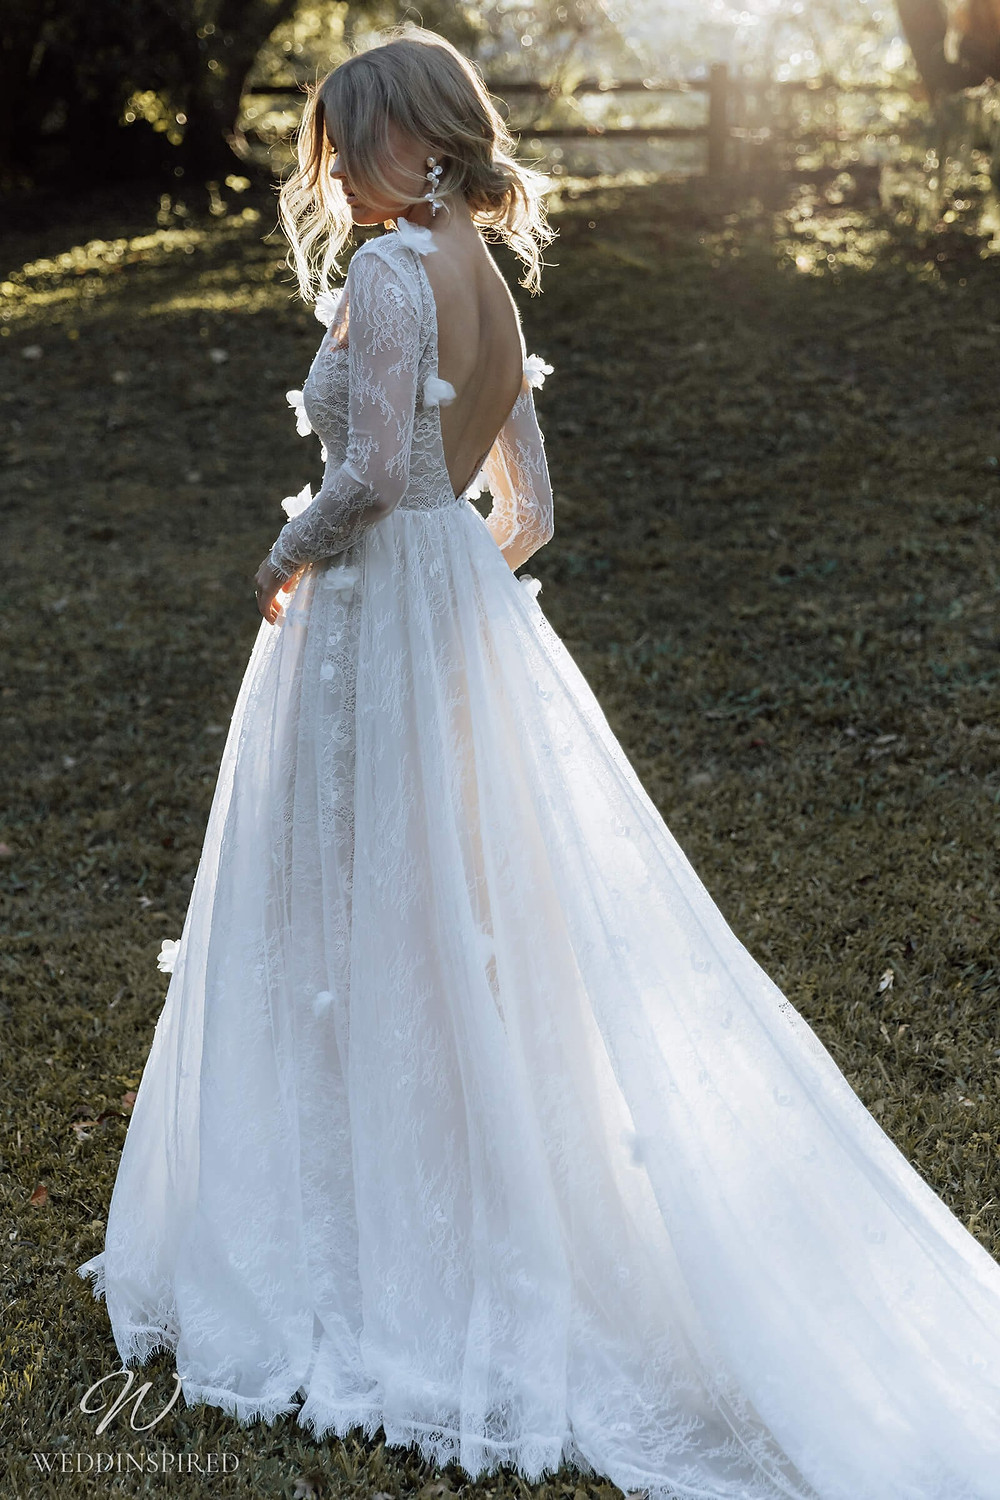 A Grace Loves Lace 2021 lace A-line wedding dress with long sleeves and a low back